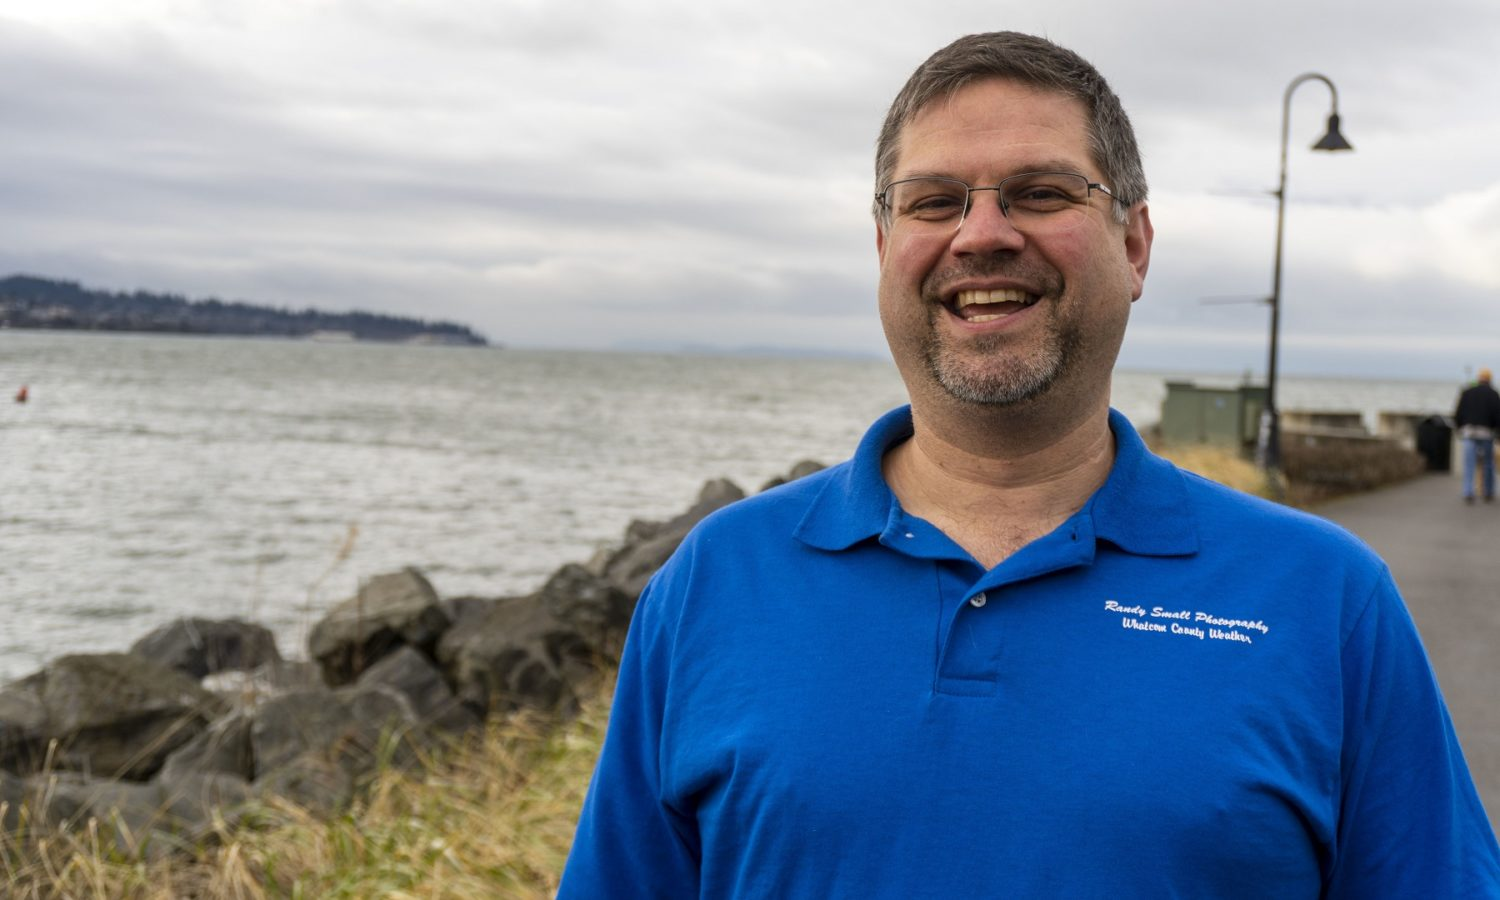 Randy Small, founder of Whatcom County Weather.